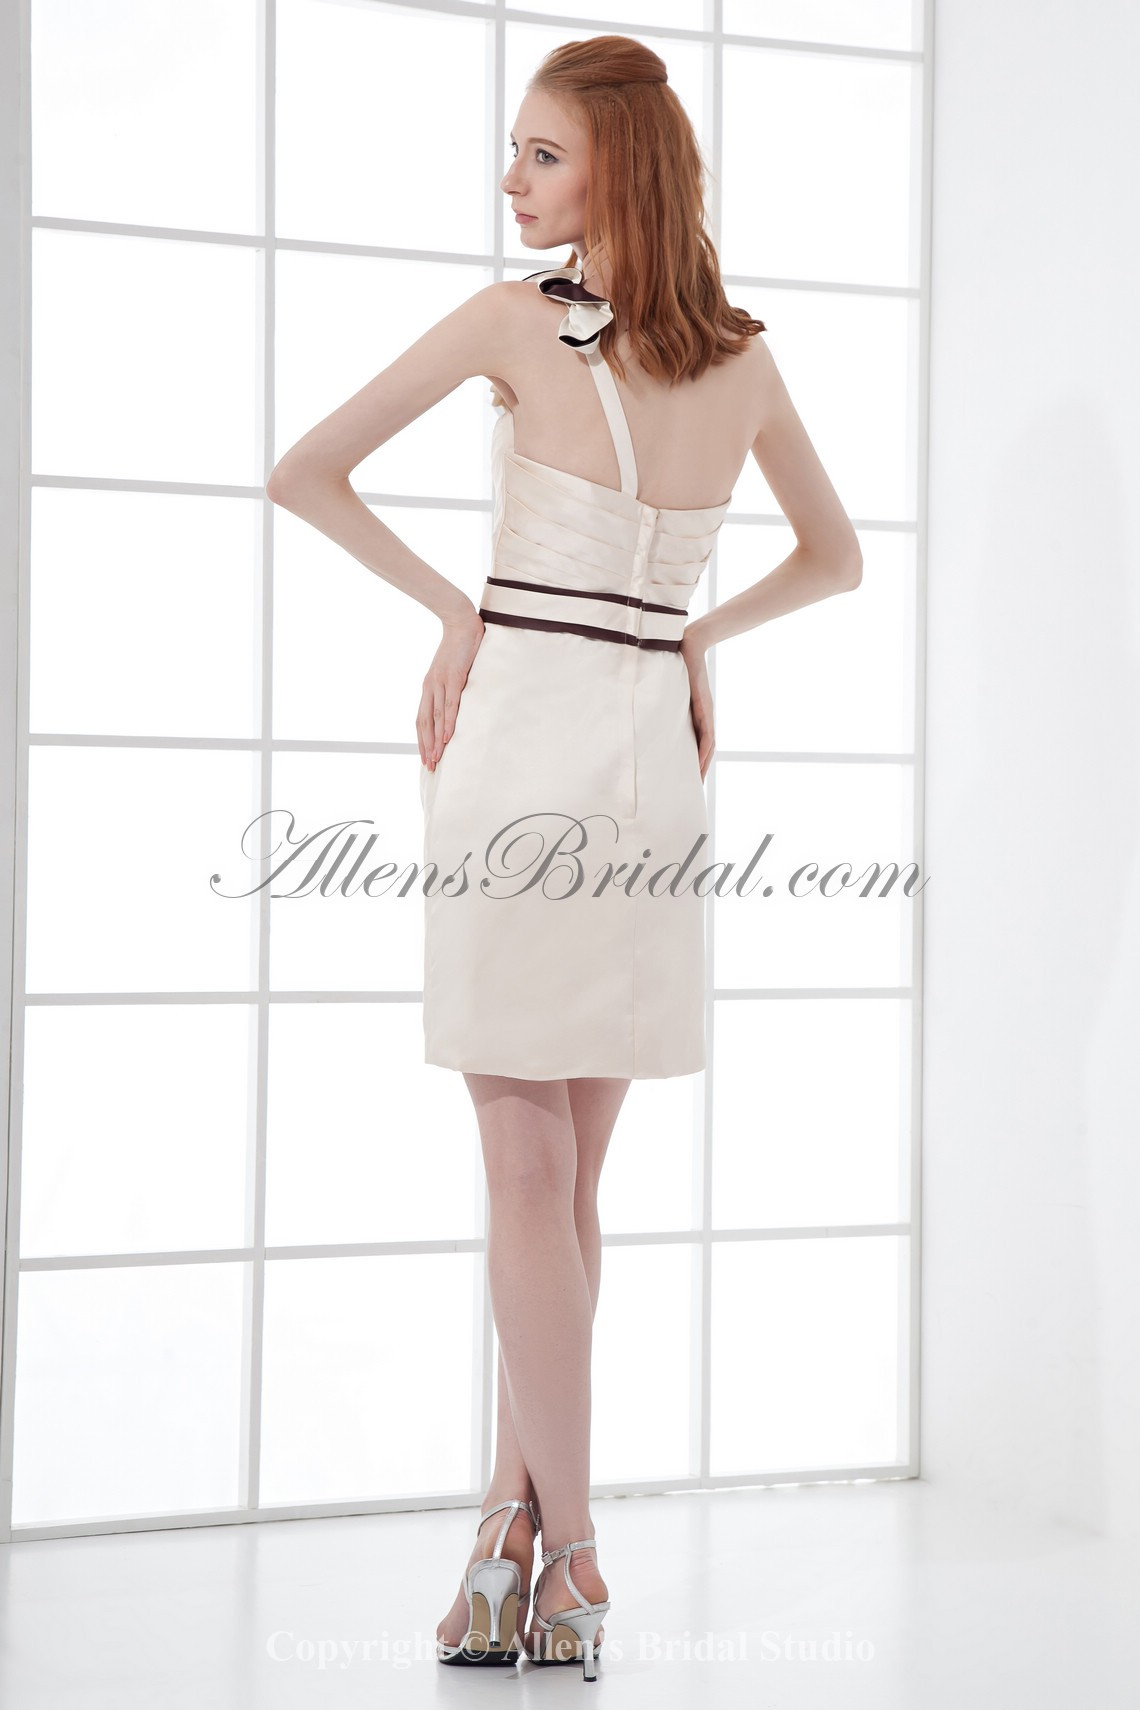 /69-552/satin-one-shoulder-neckline-sheath-short-bow-cocktail-dress.jpg